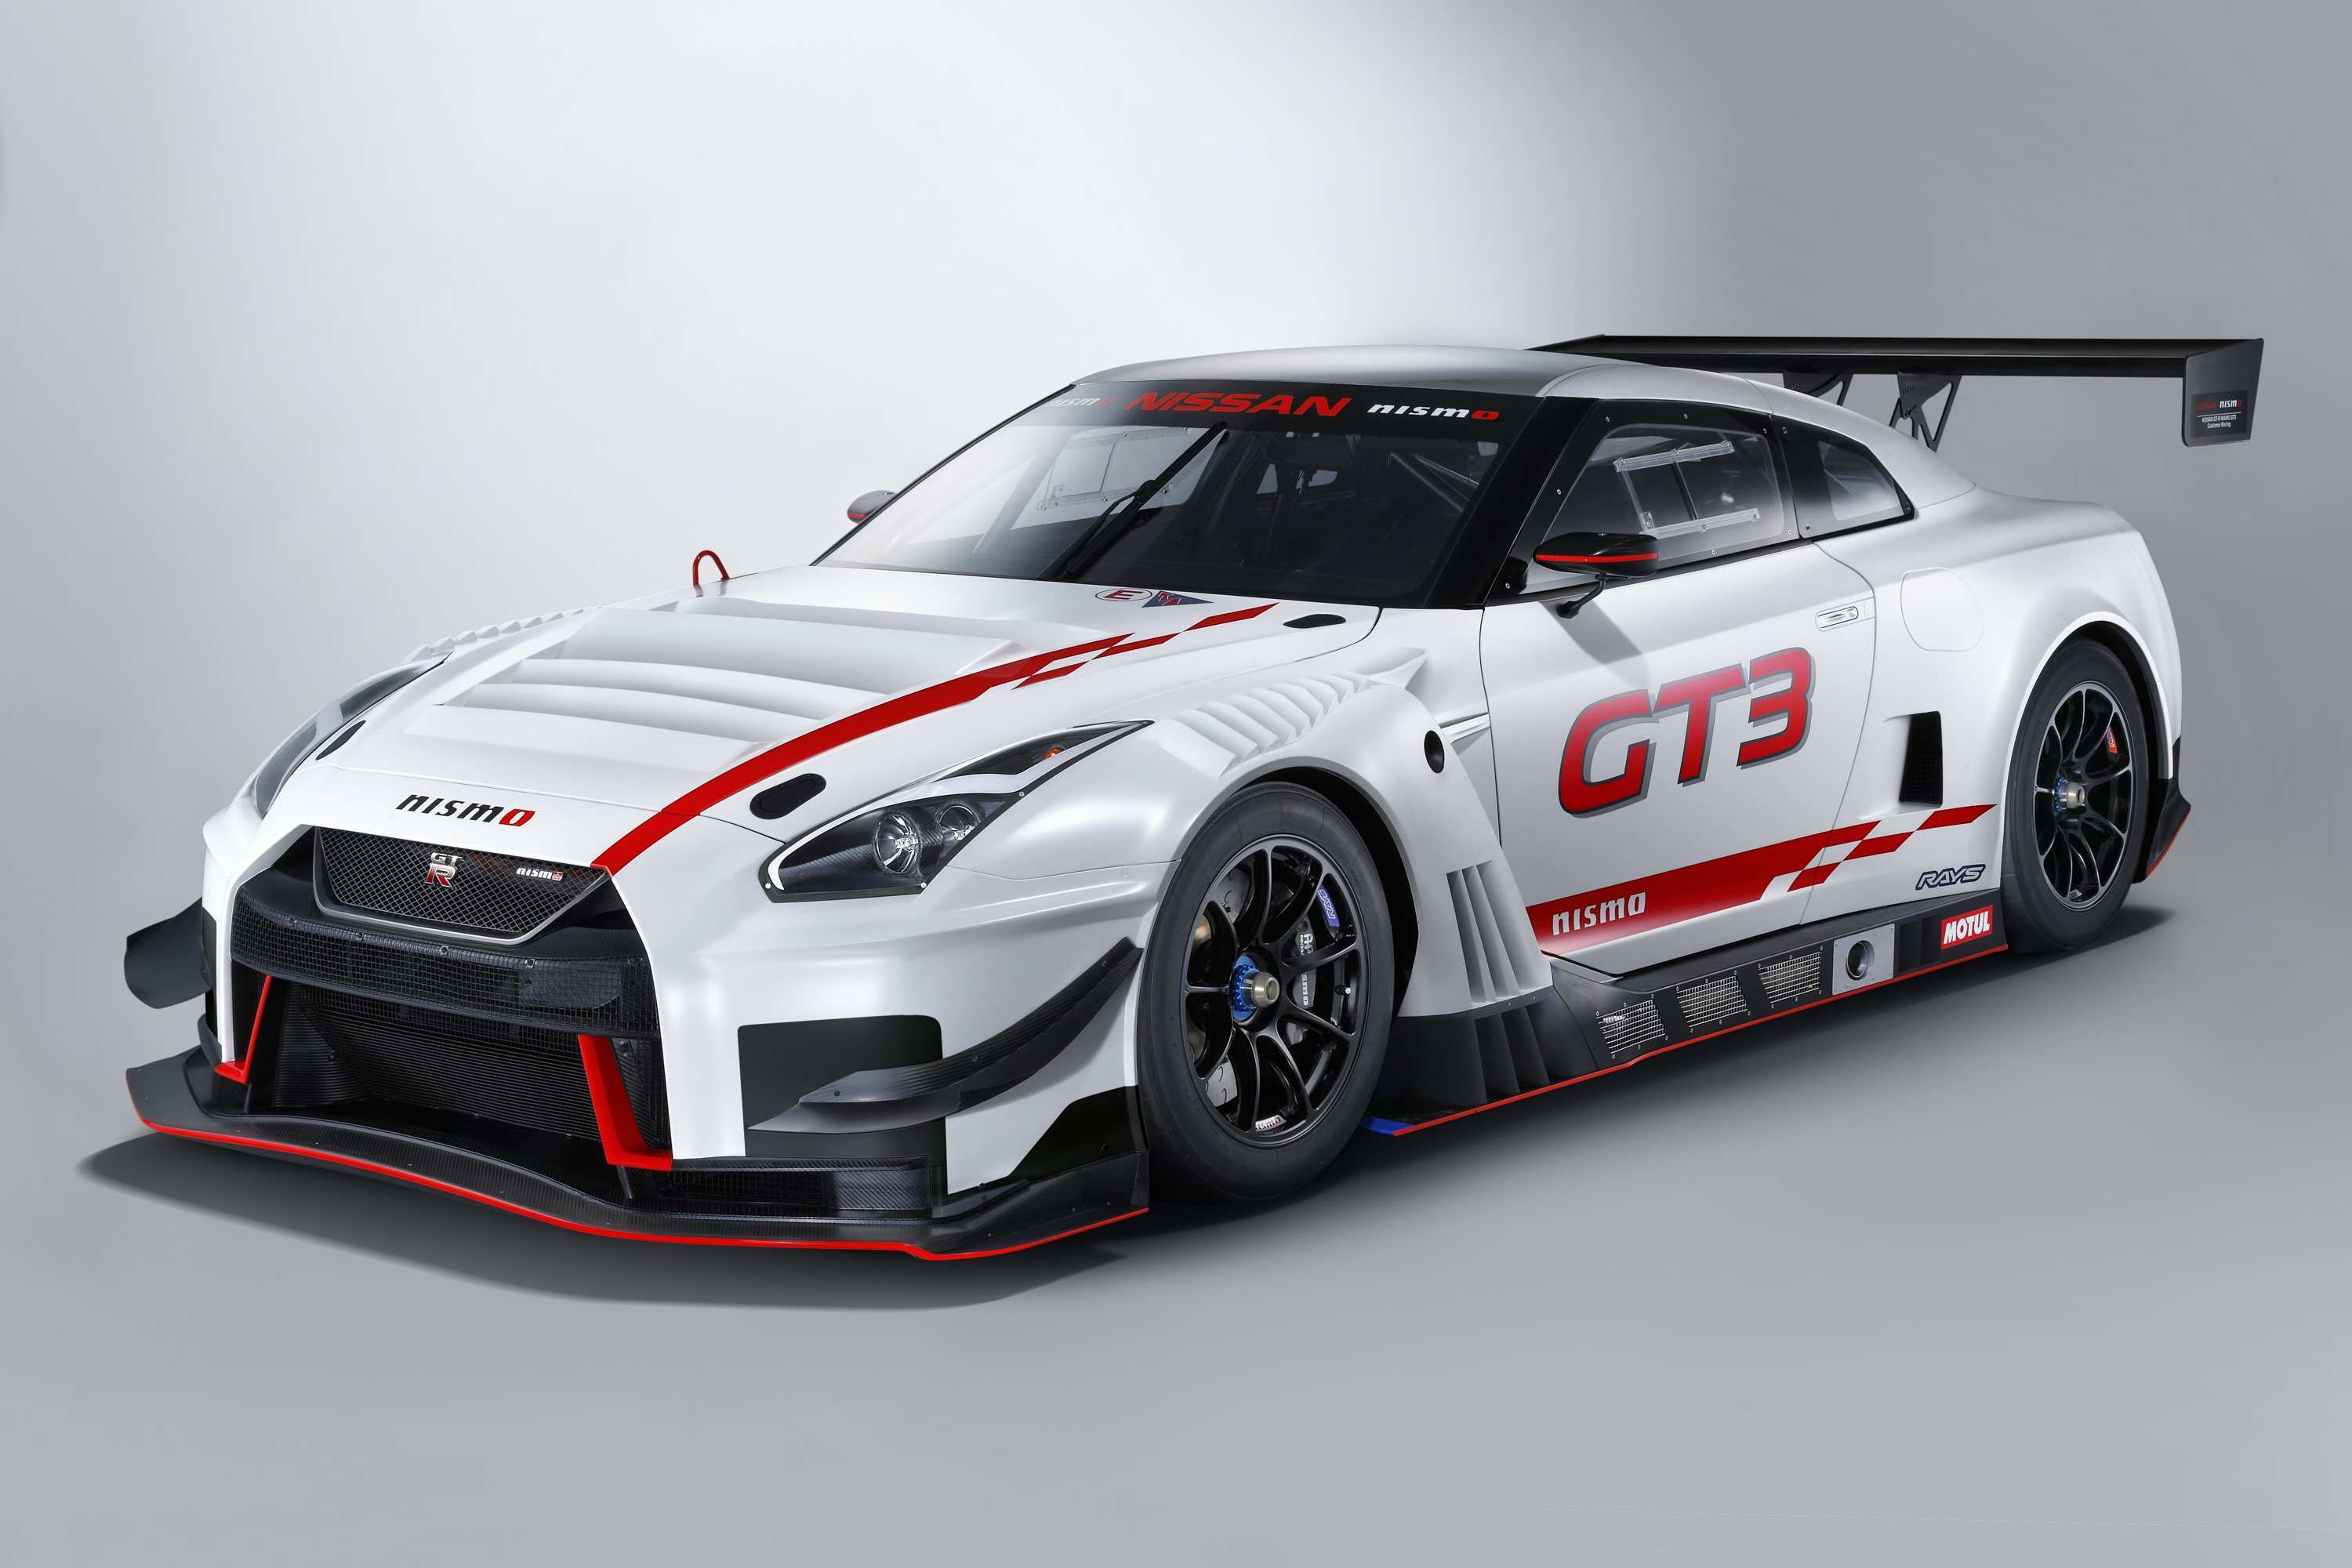 55 All New 2019 Nissan Gtr Nismo Hybrid History